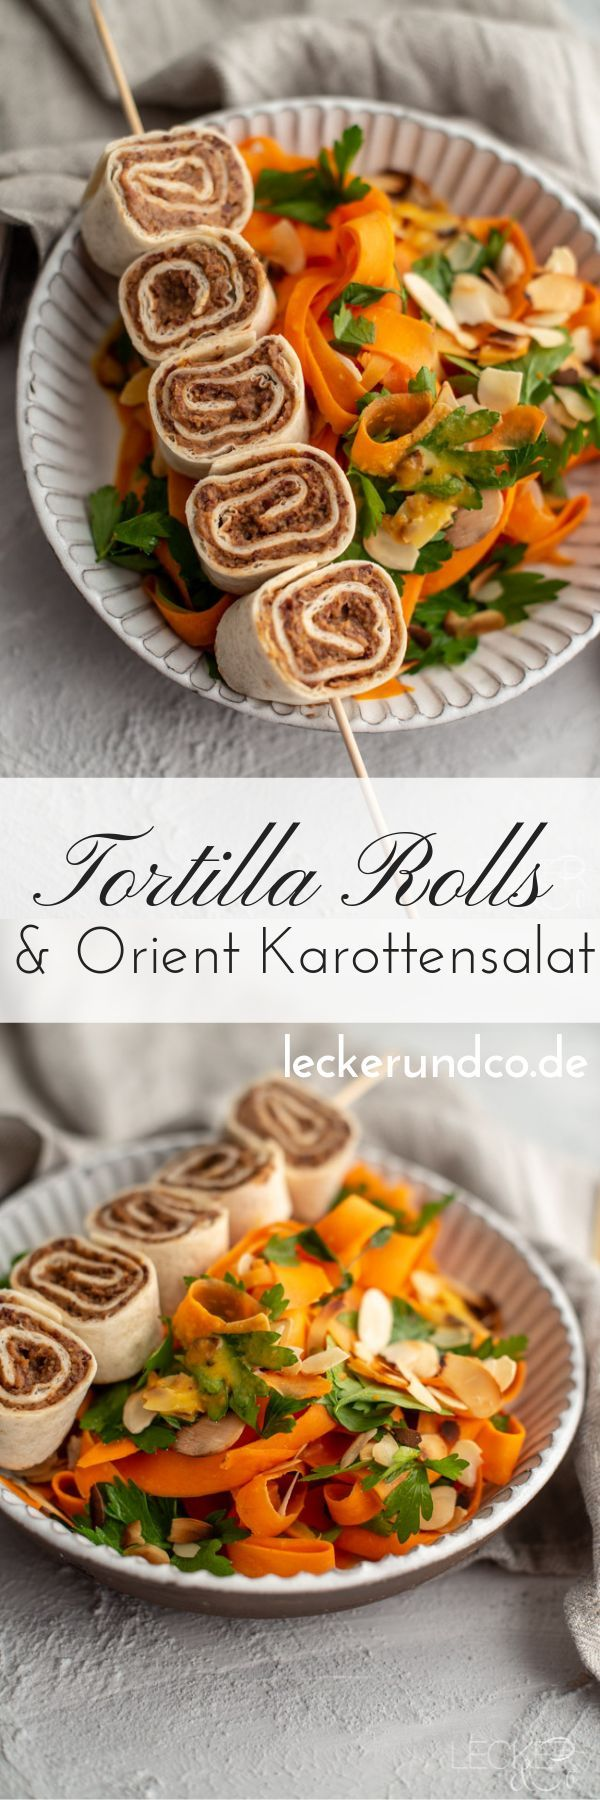 Tortilla rolls with oriental carrot salad Tortilla rolls filled with bean cream and oriental carrot salad | vegan...